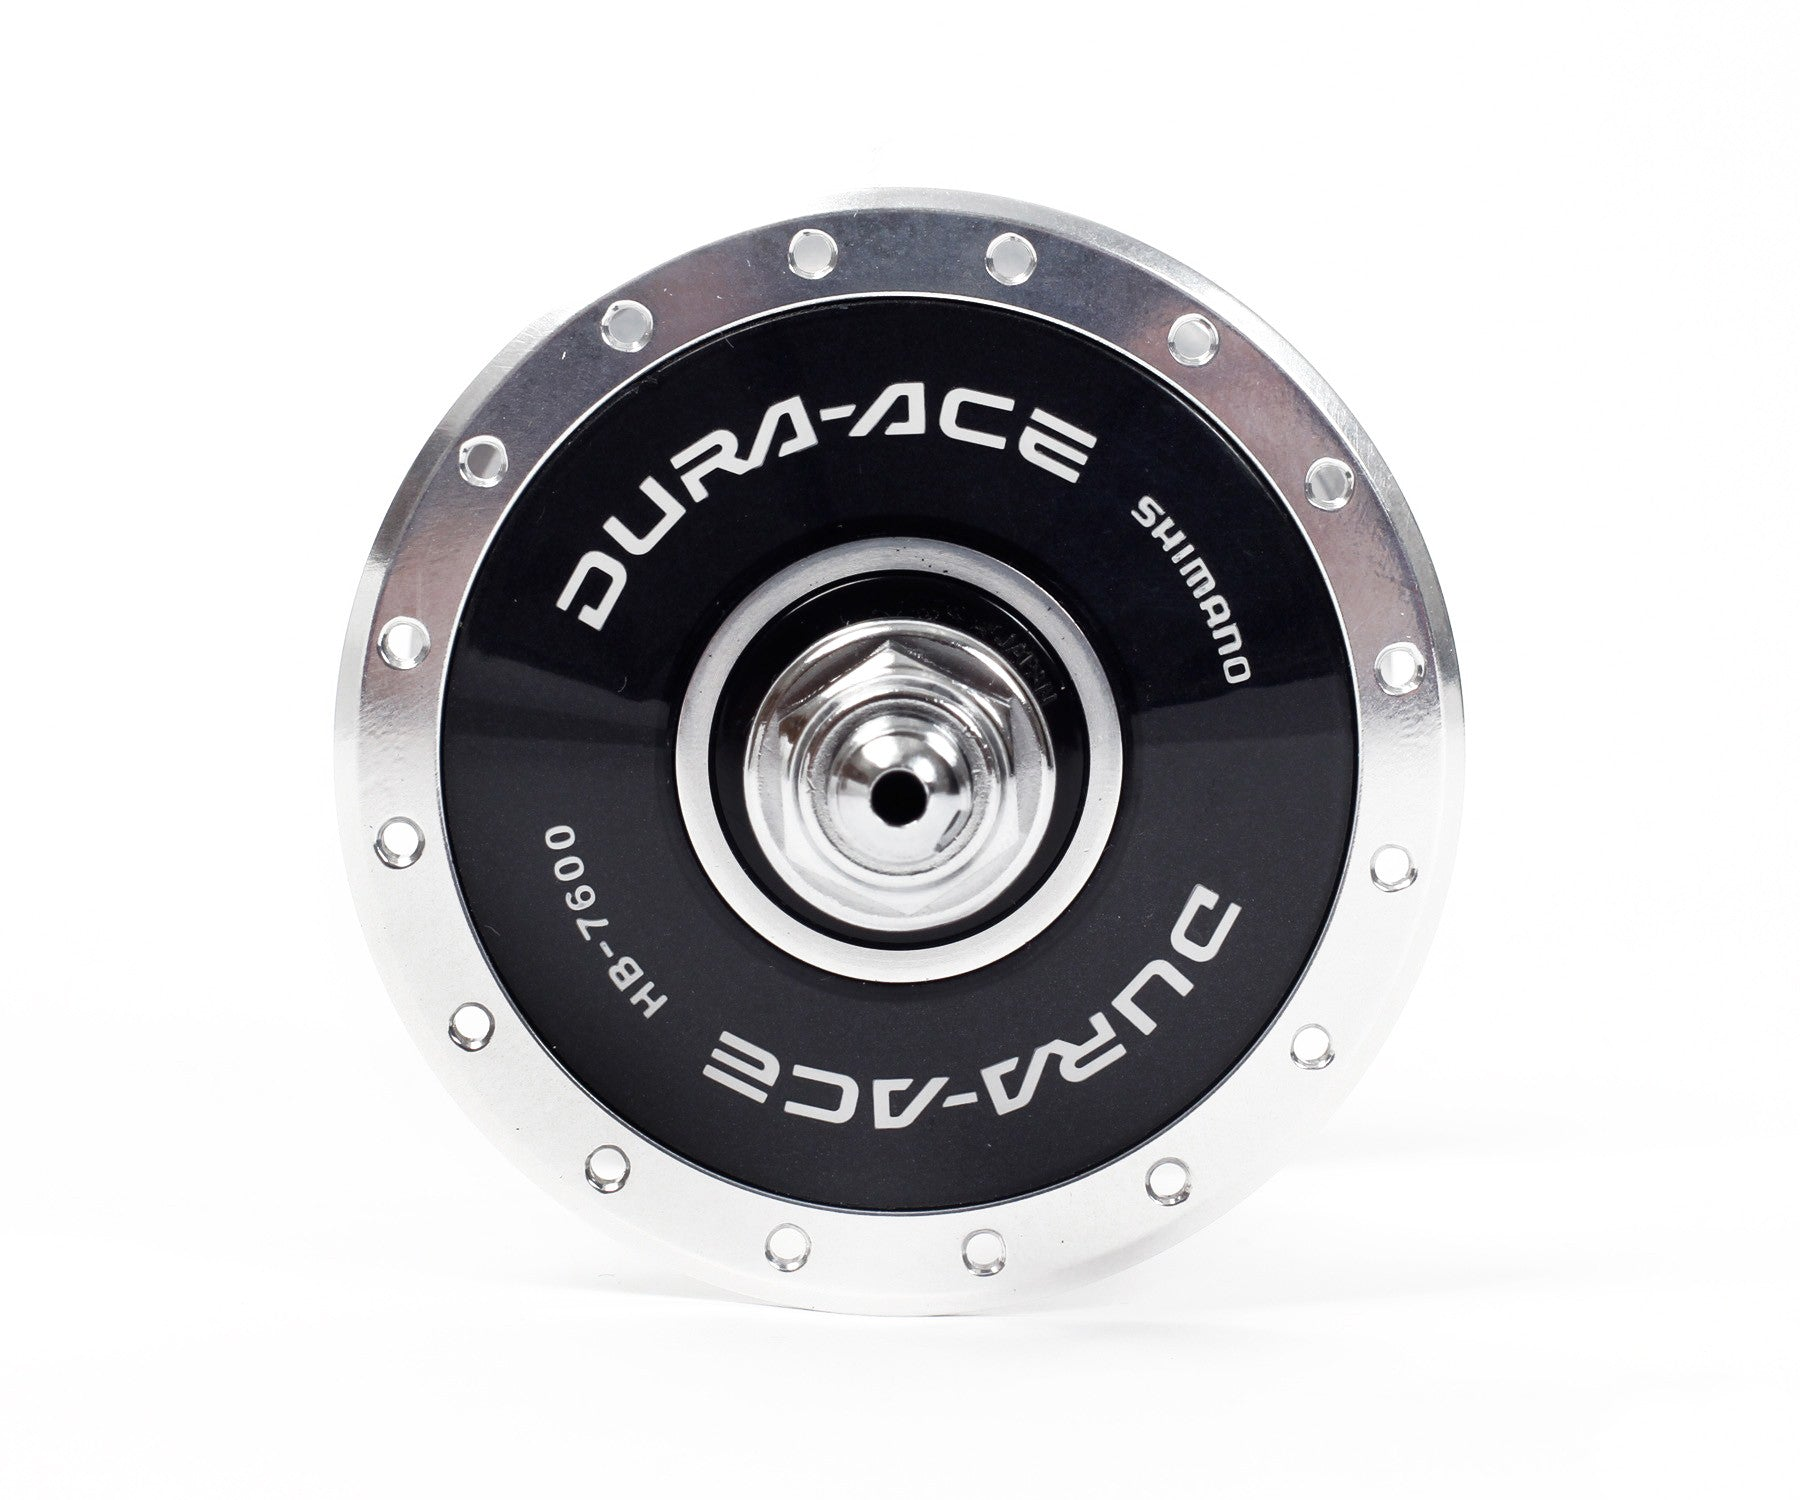 Shimano Dura Ace 7600 front track hub - Retrogression